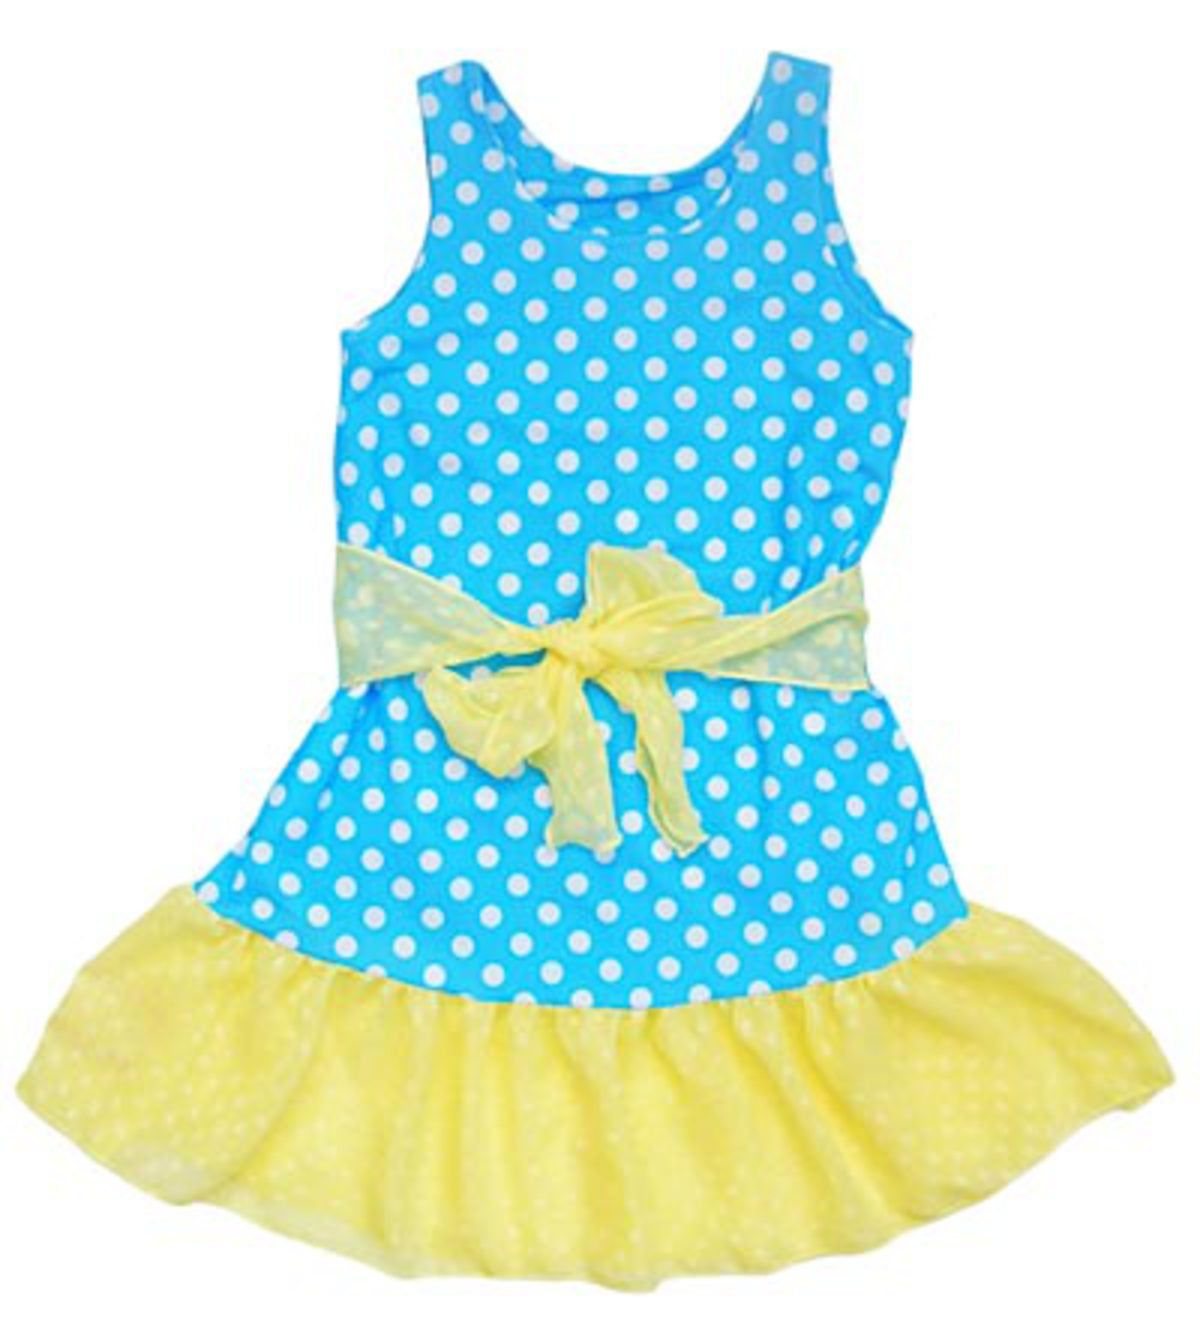 TwirlyGirl W.O.W. Dress - Cloud Hopping - 4